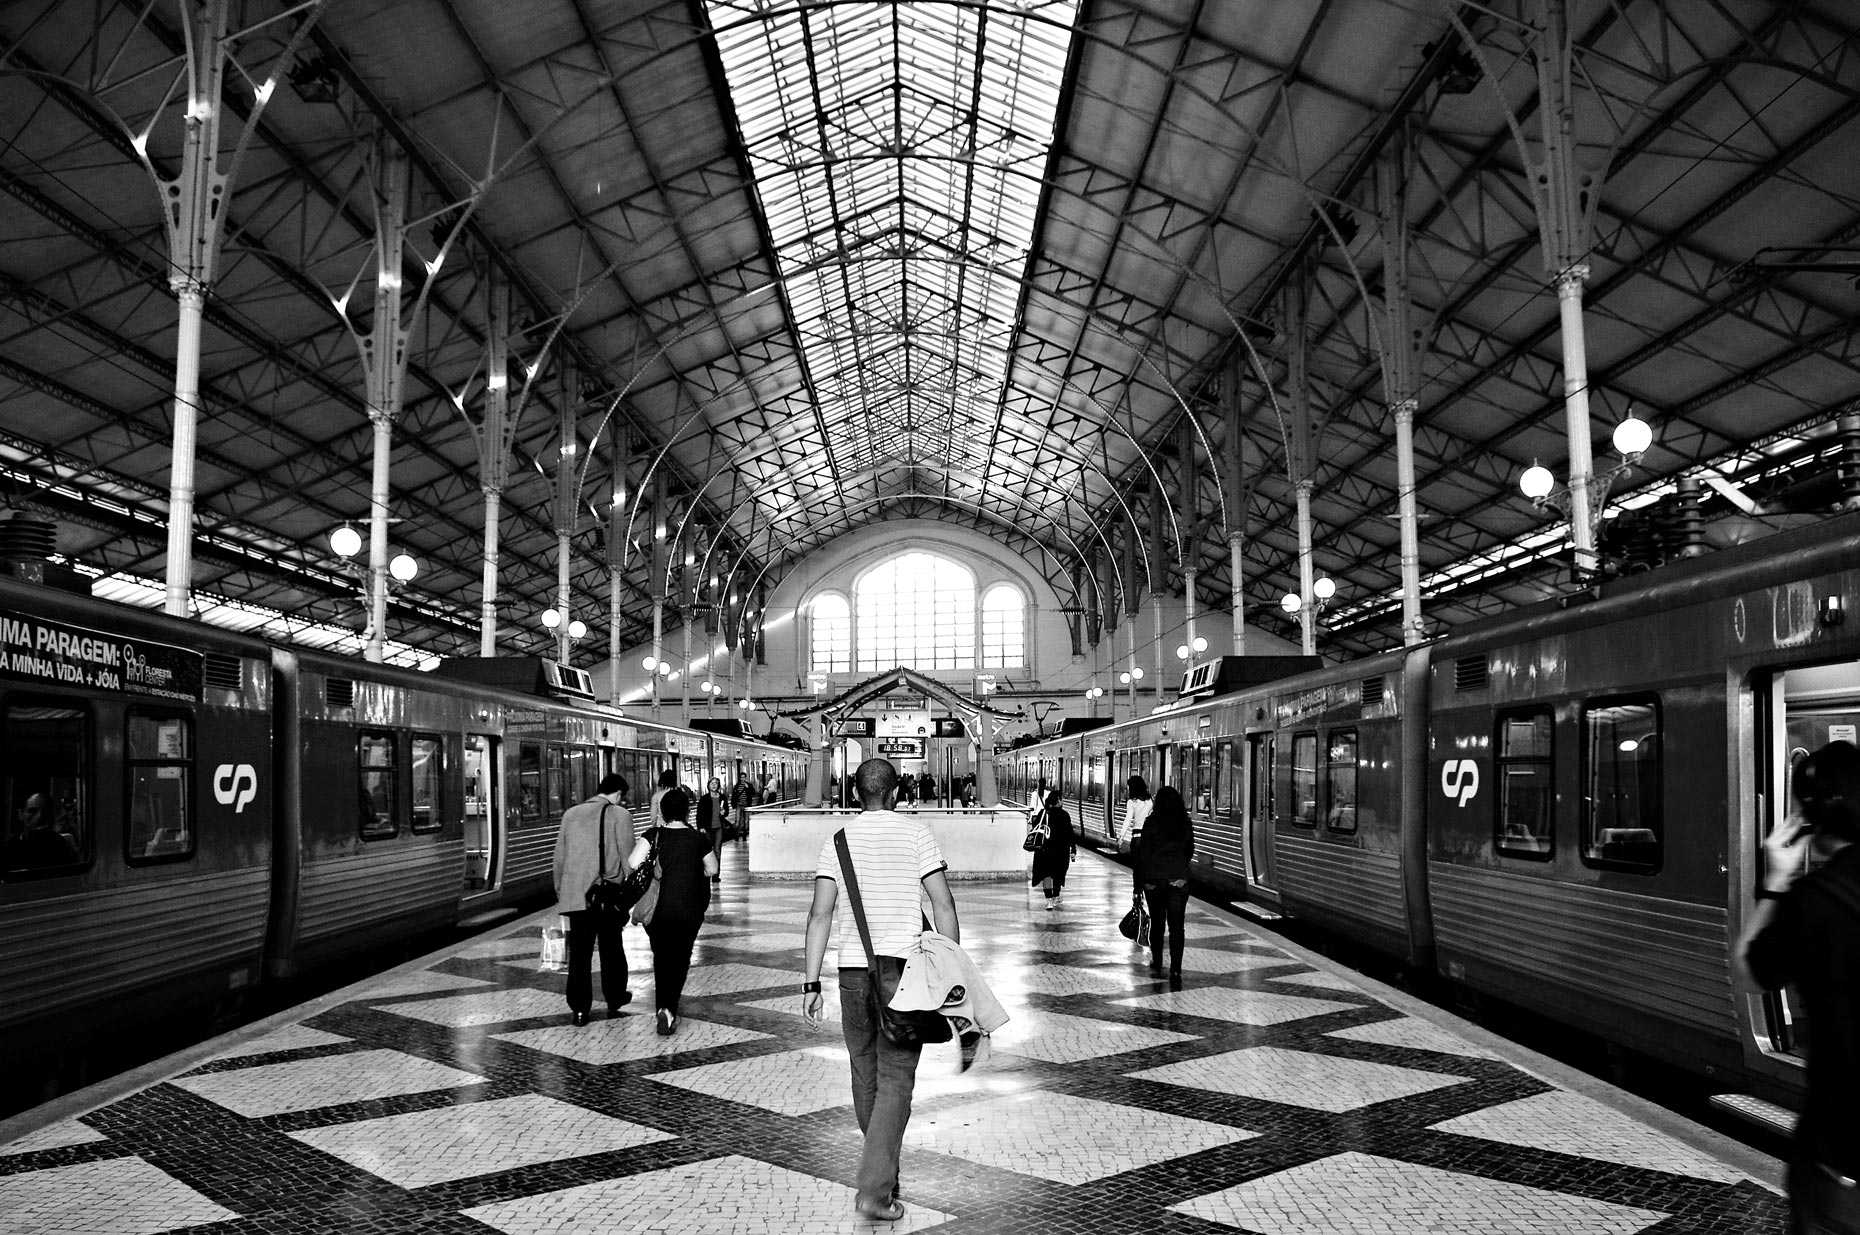 Passengers walking inside train station in Lisbon Portugal.